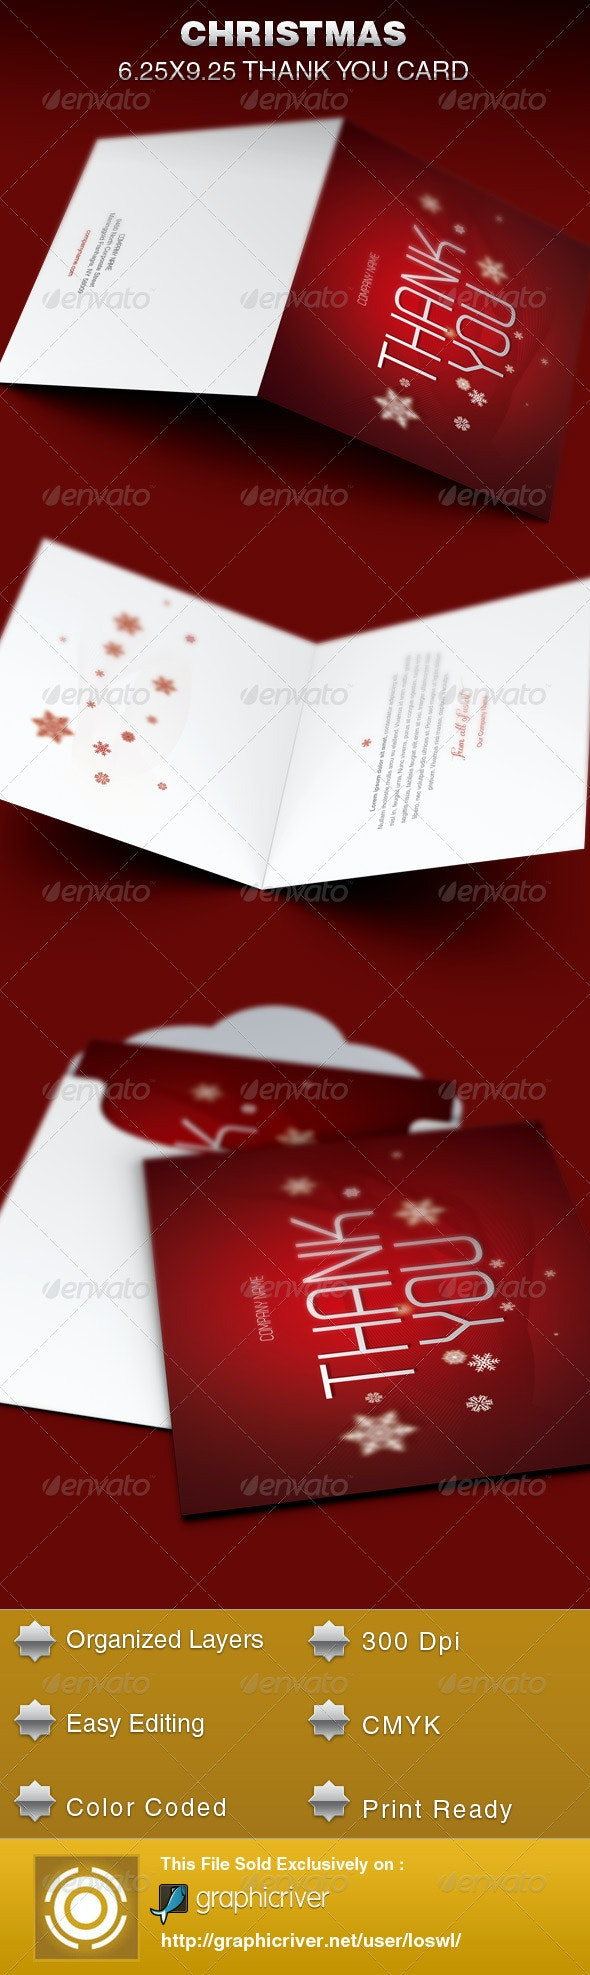 Christmas Thank You Card Template - Cards & Invites Print Templates